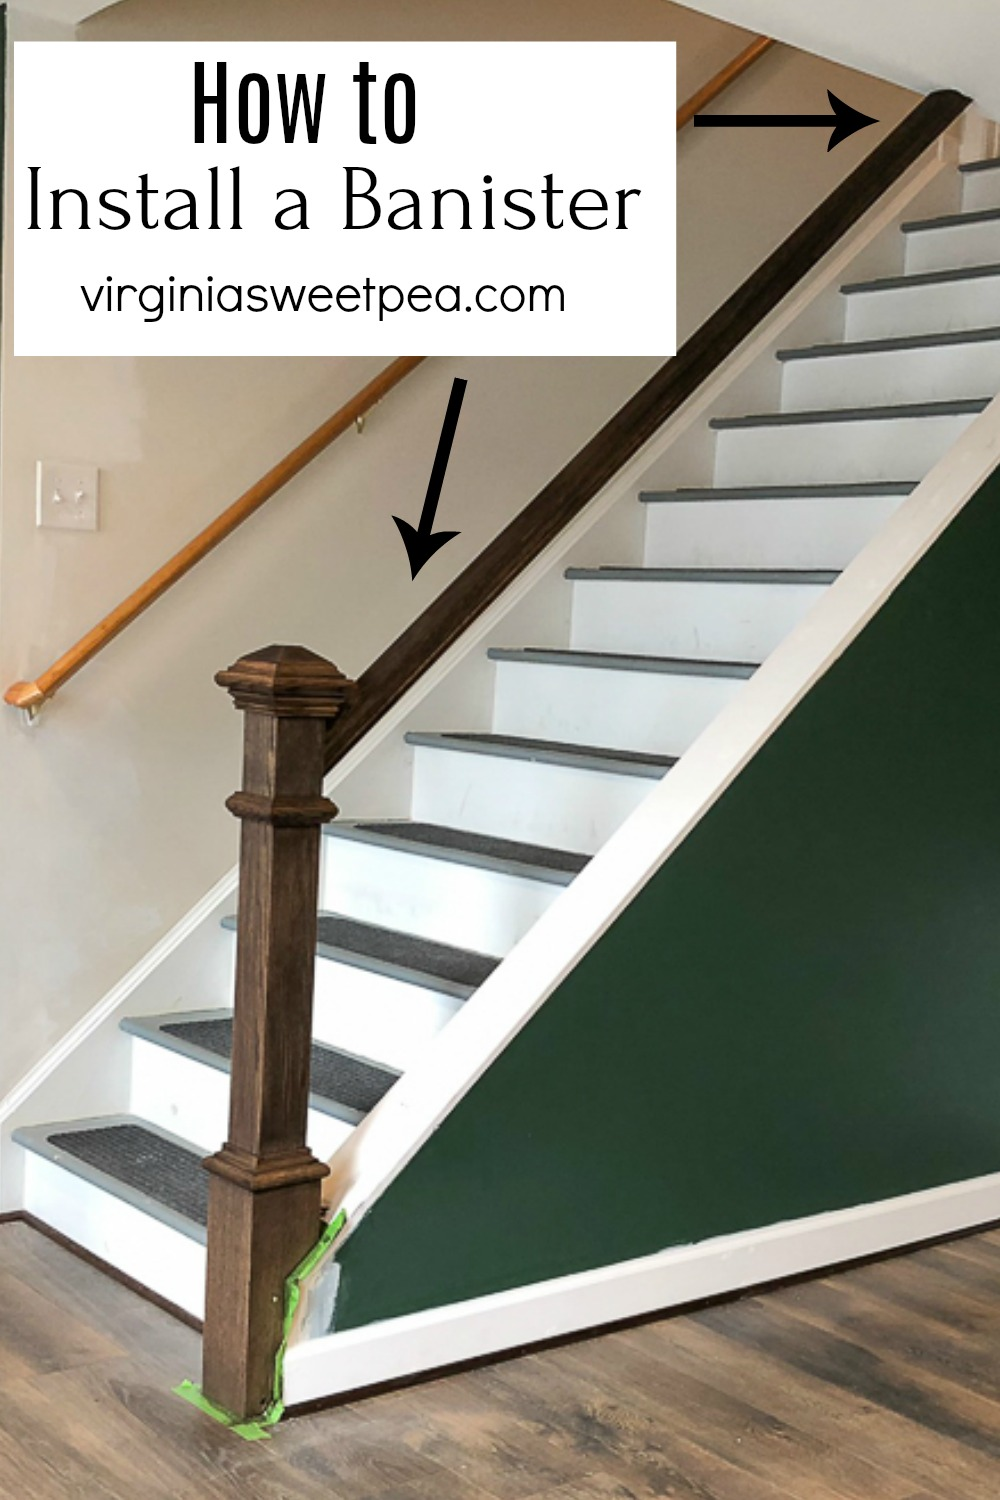 Learn how to install a banister on a set of steps.  #installingabanister #howtoinstallabanister #banister via @spaula